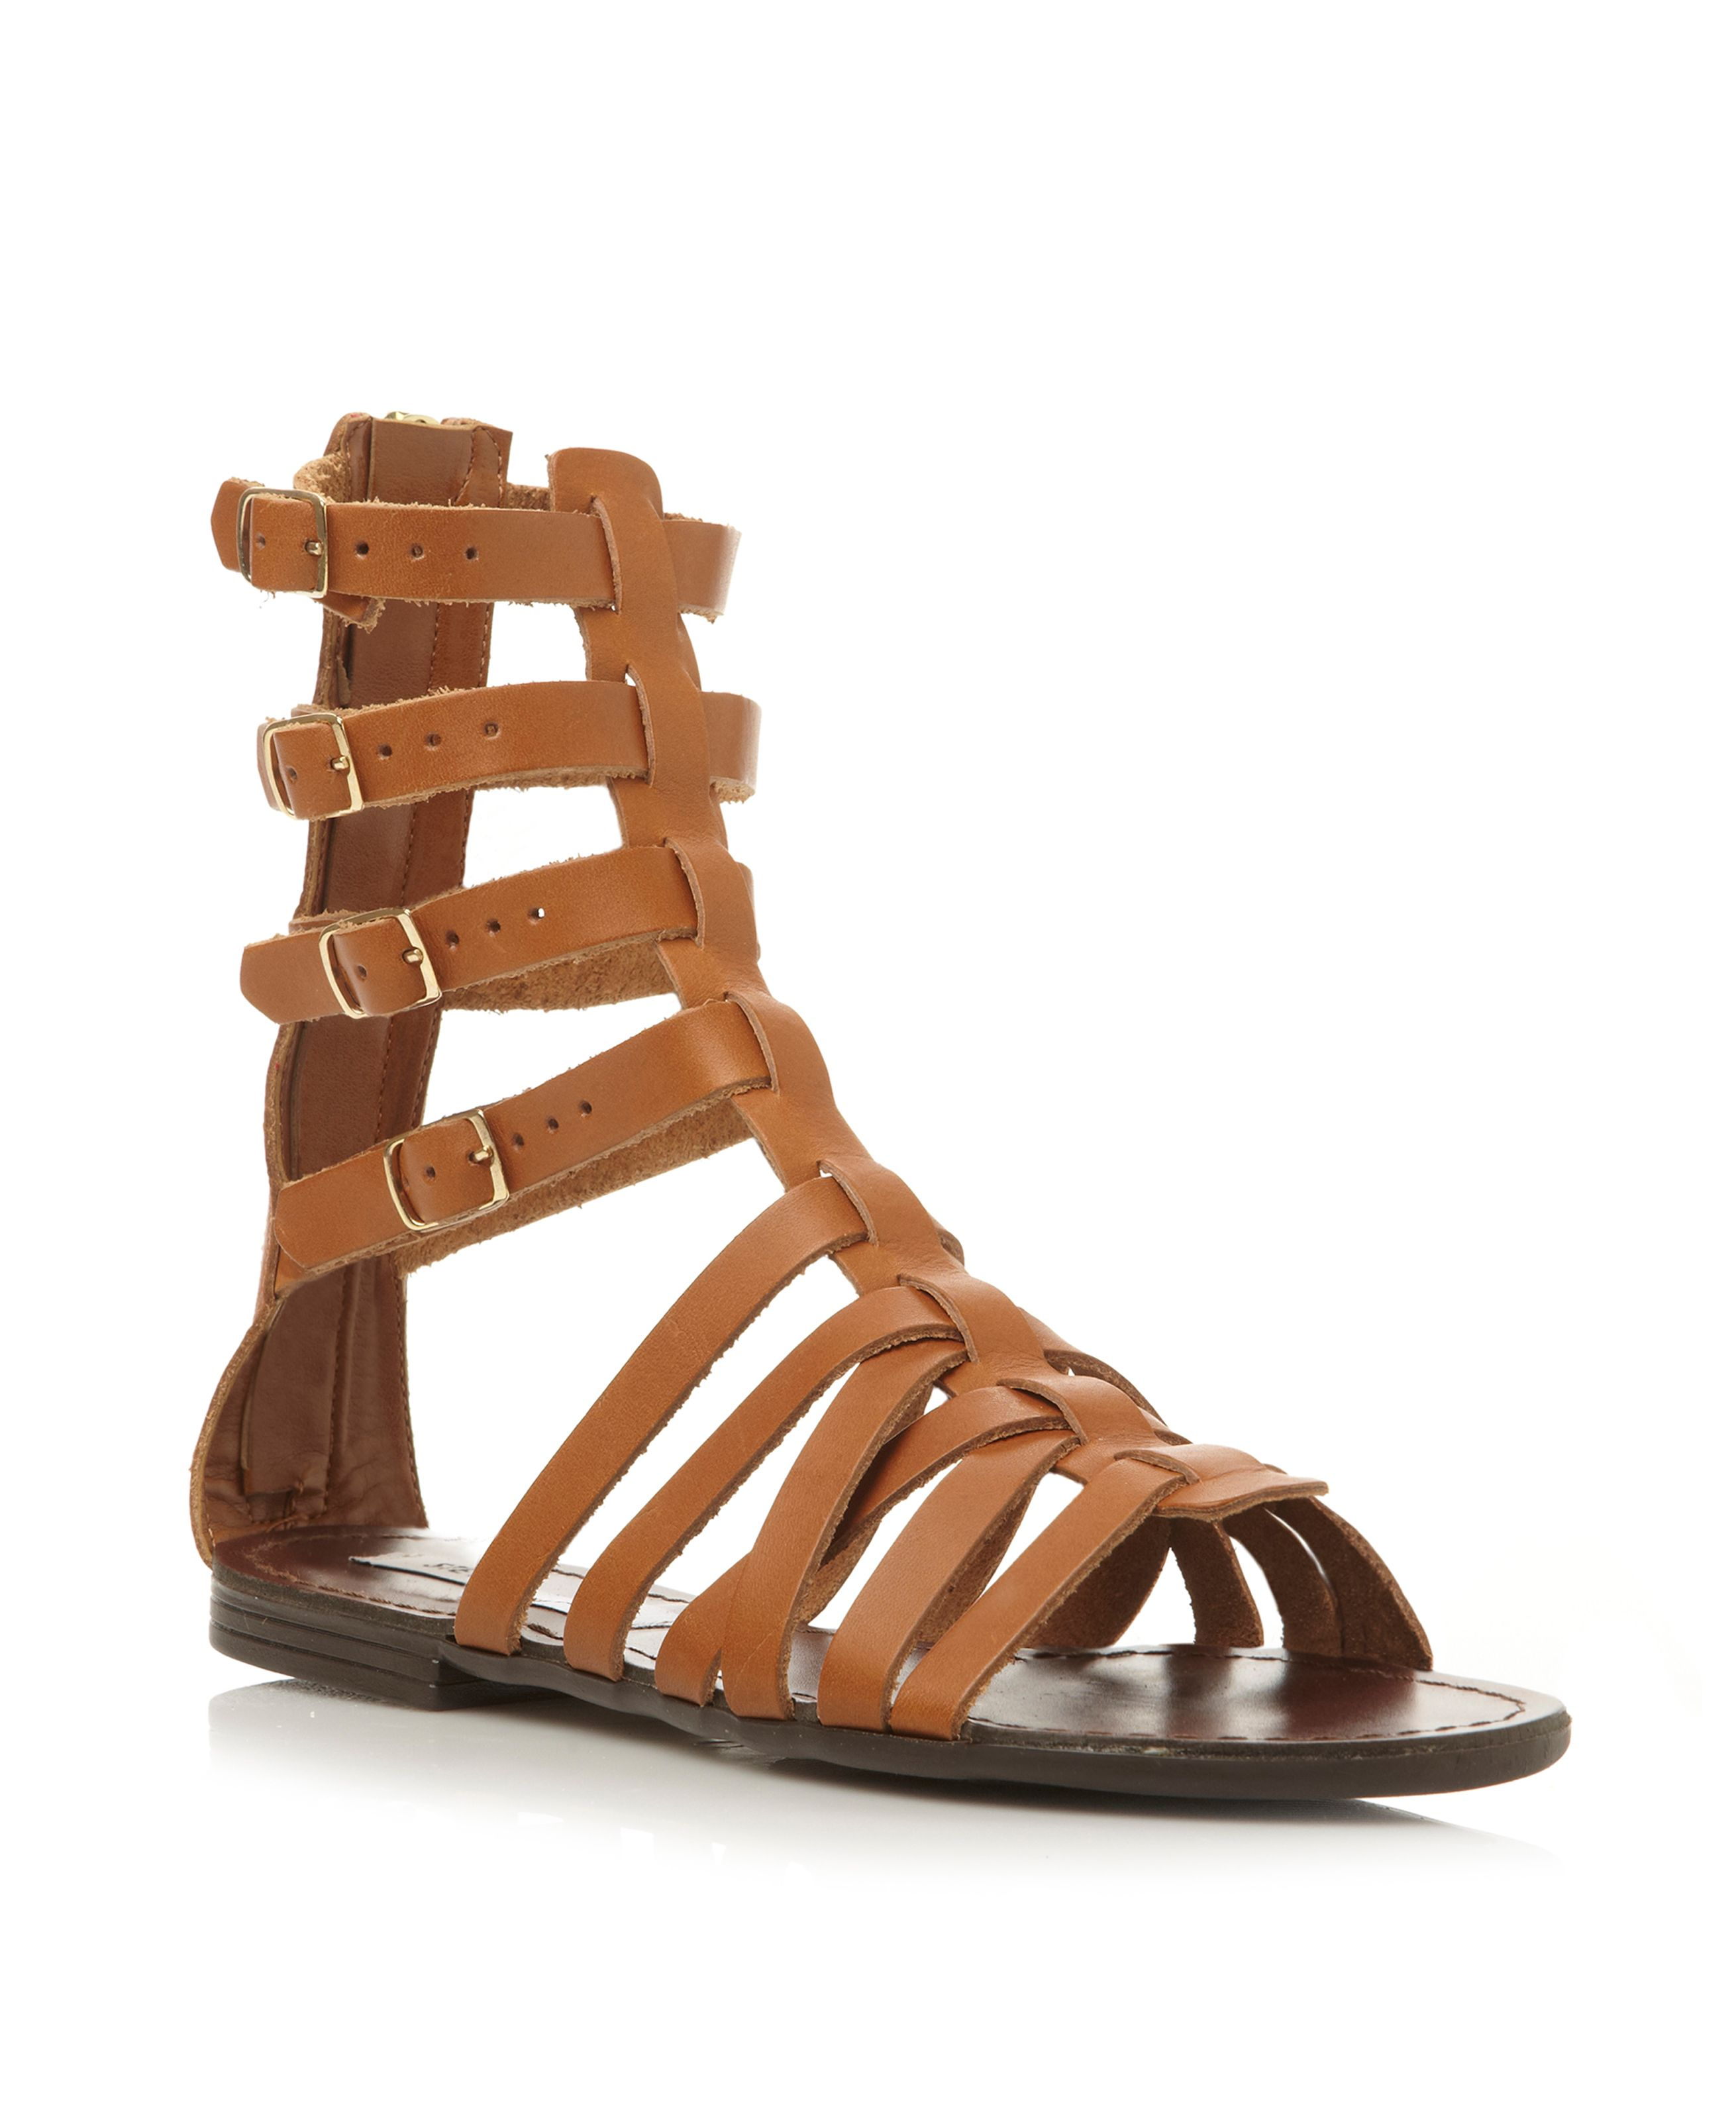 Ceaserr gladiator sandals